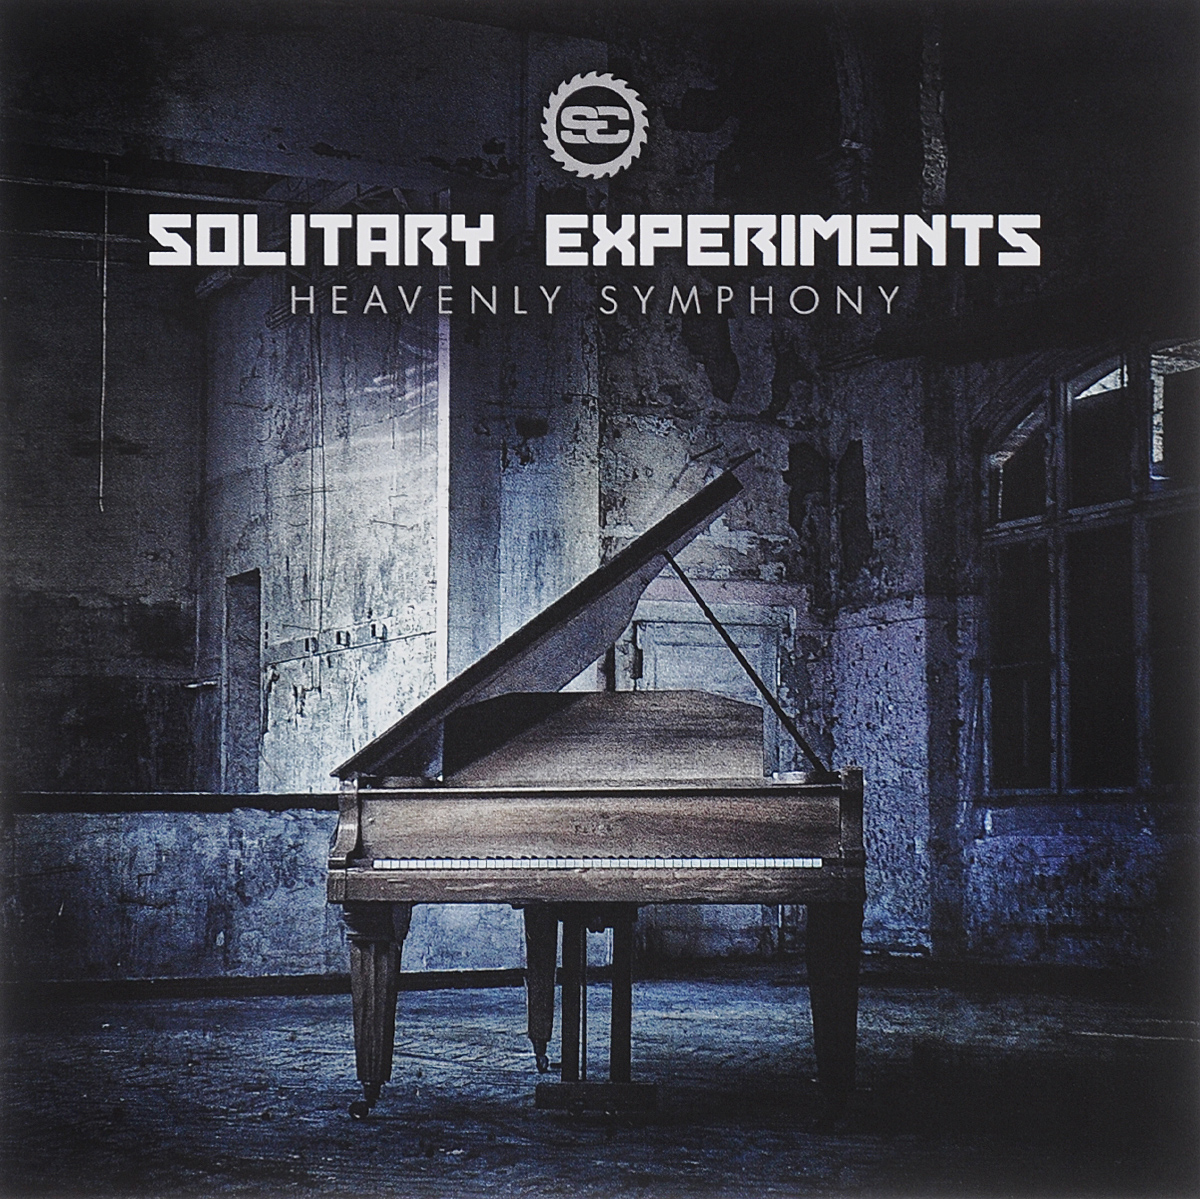 Solitary Experiments. Heavenly Symphony. Solitary Experiments